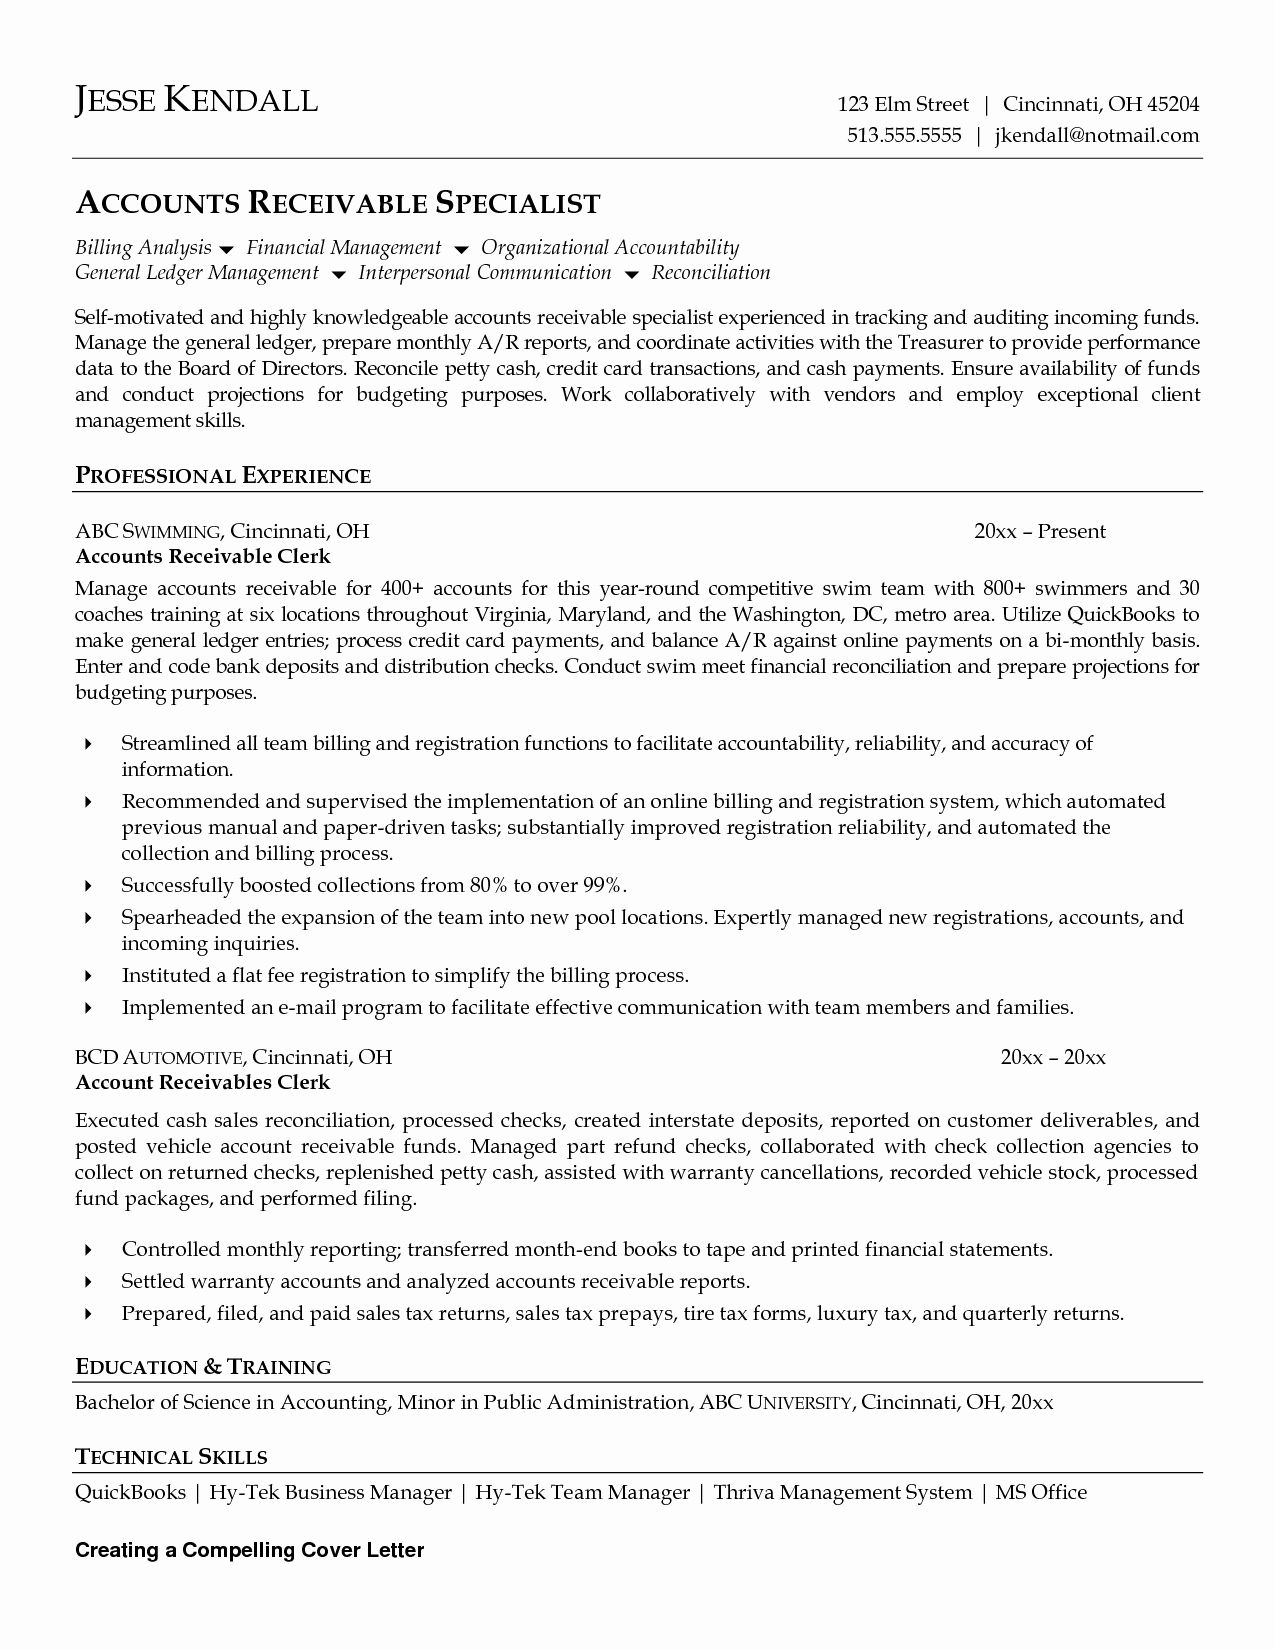 20 Accounts Receivable Manager Resume In 2020 Job Application